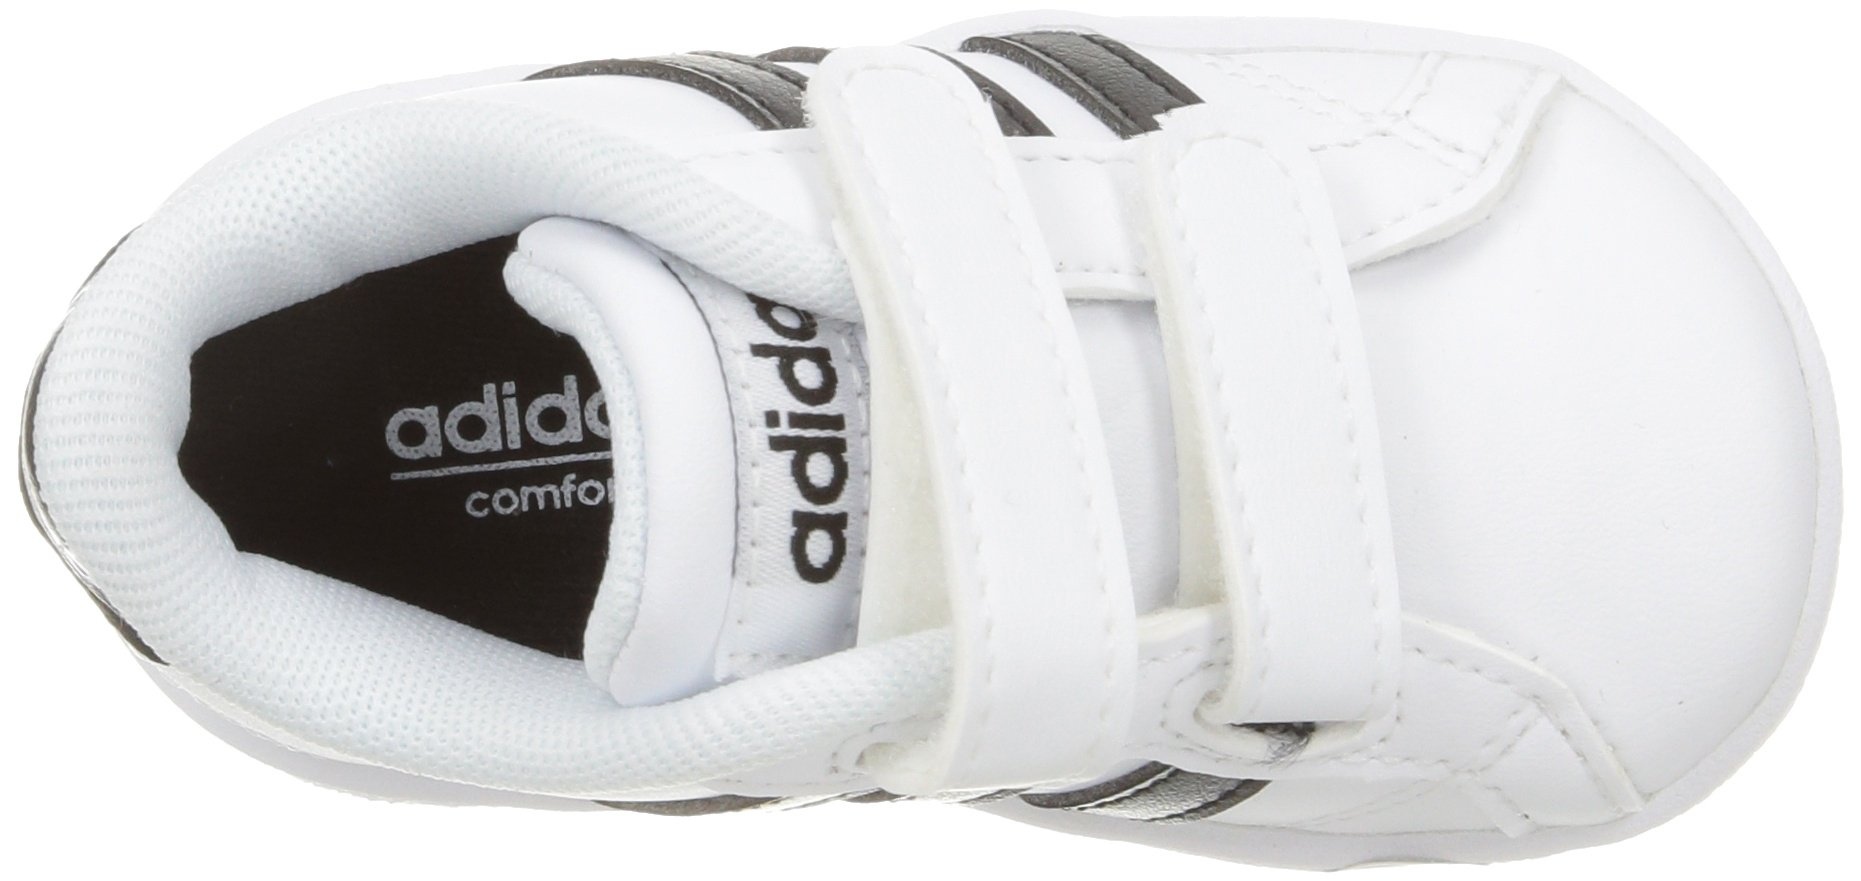 adidas Performance Baby Baseline Sneaker, White/Black/White, 6.5K M US Toddler by adidas (Image #10)